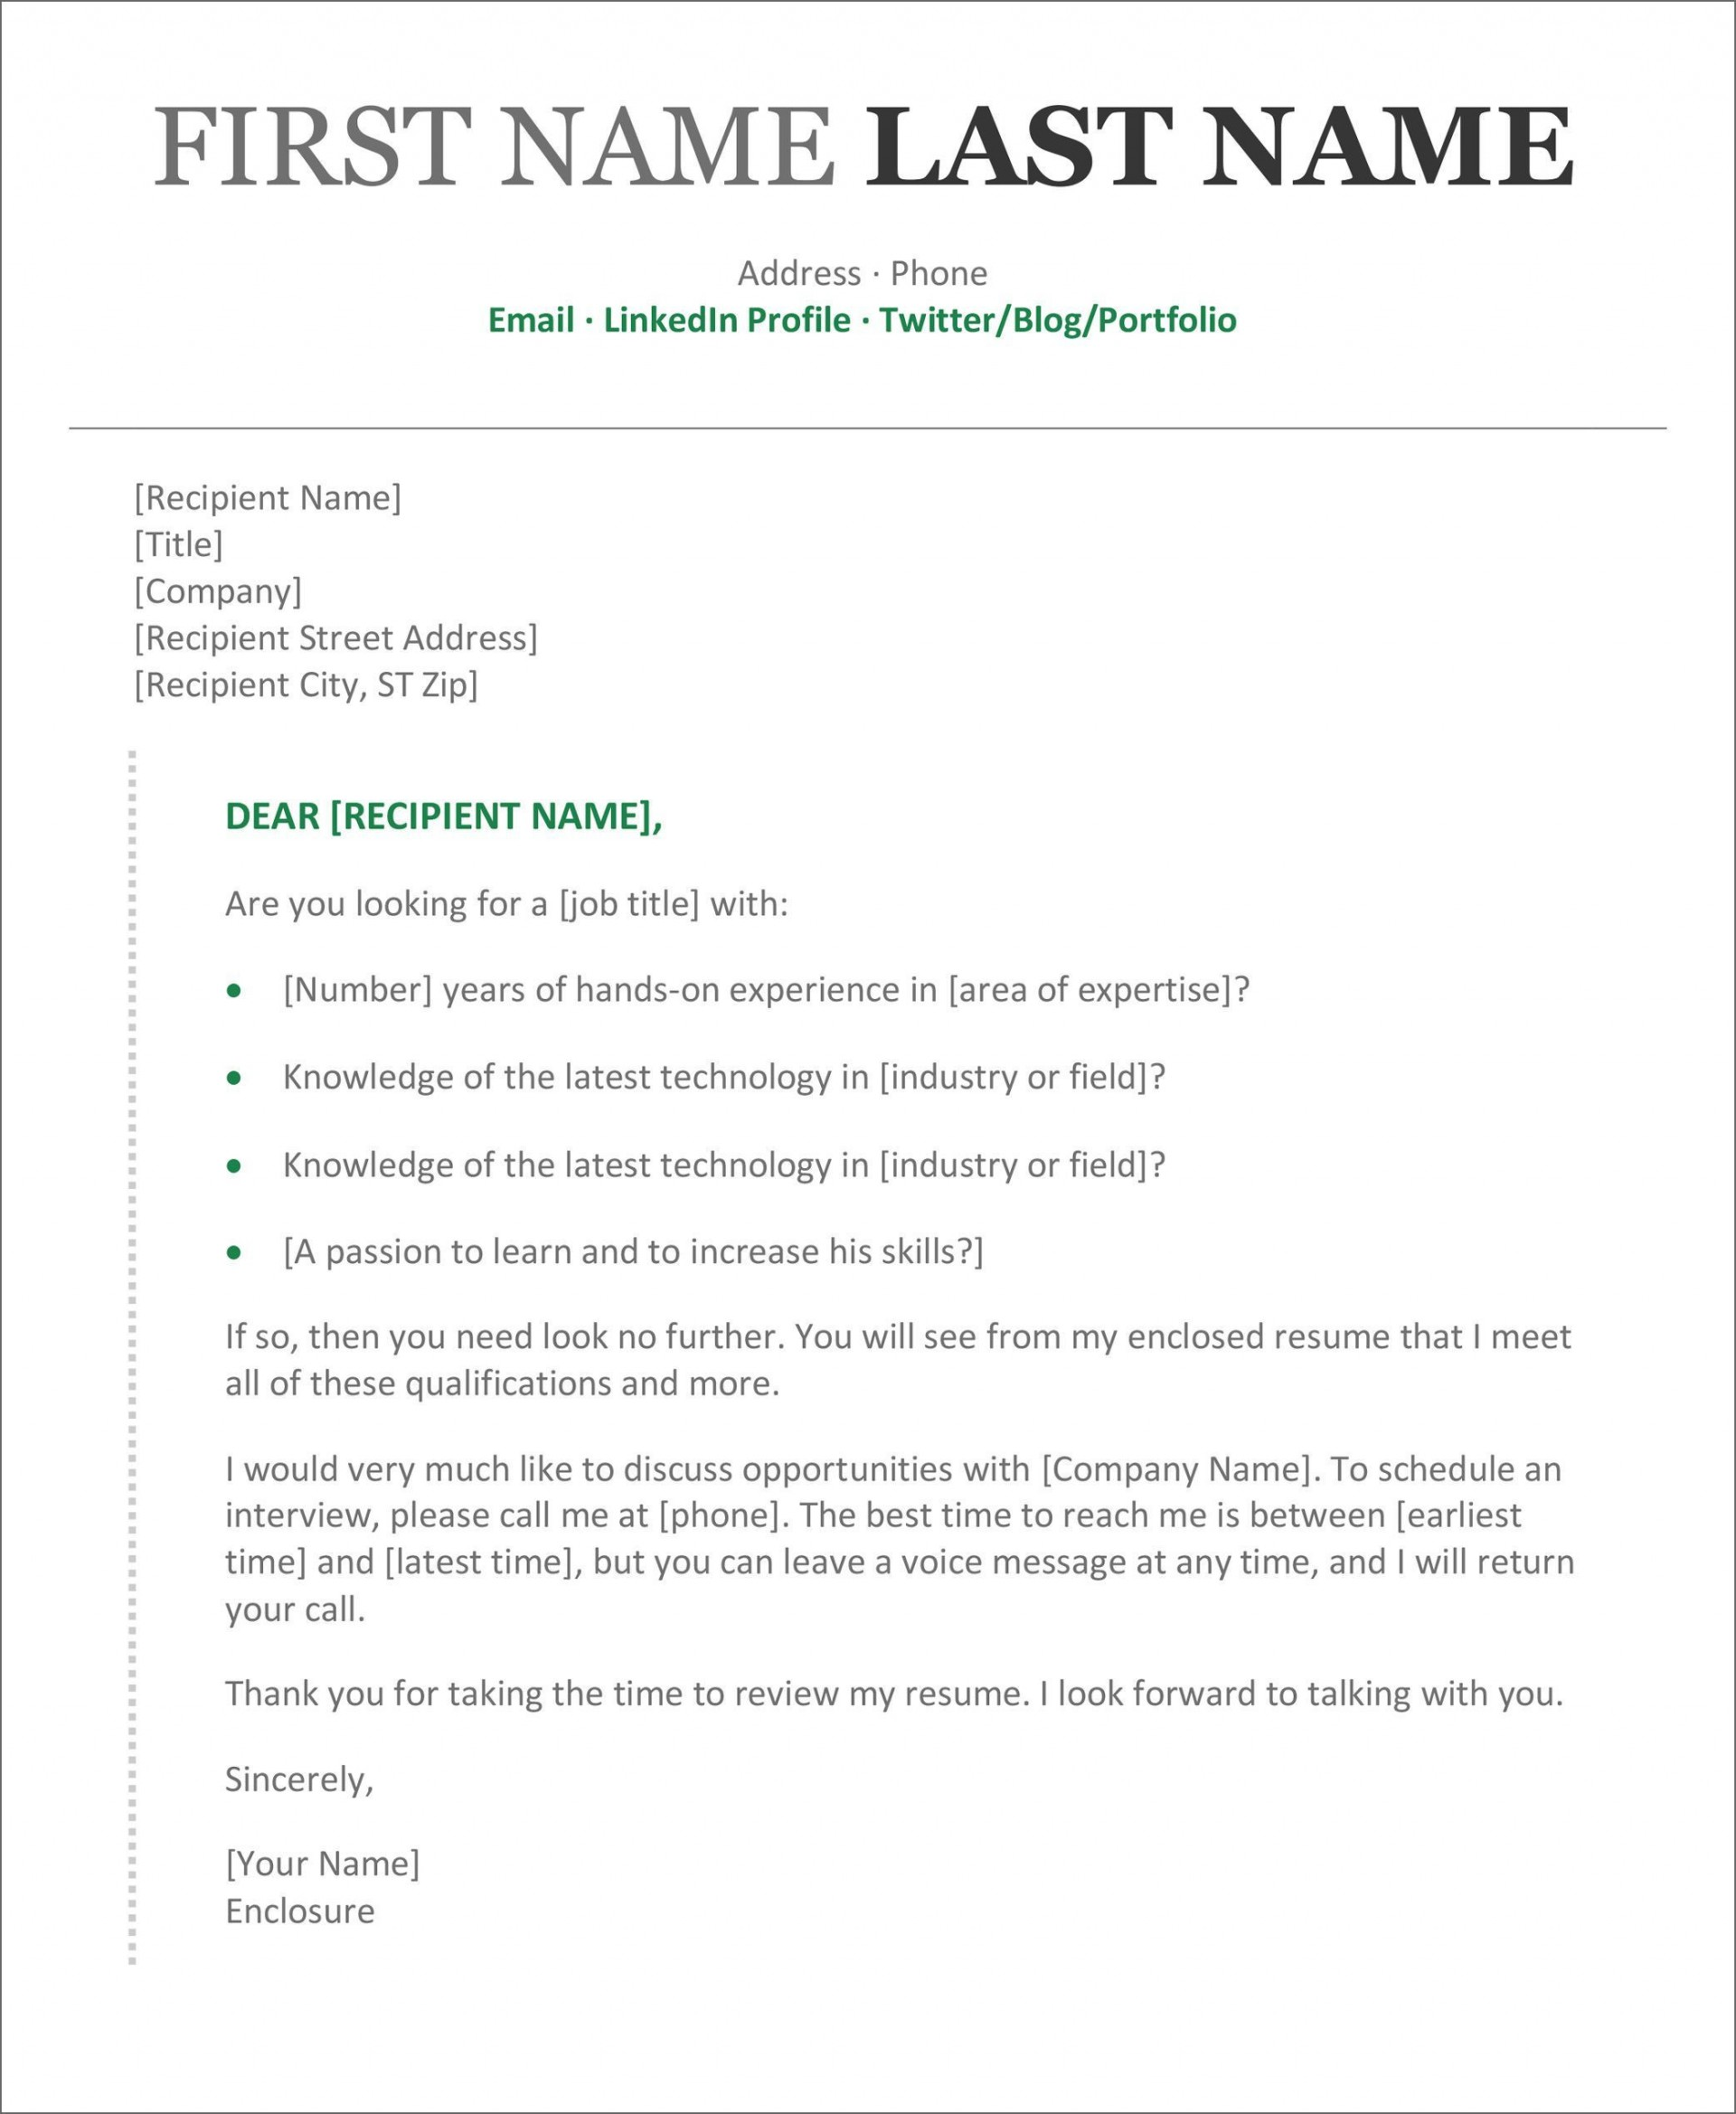 002 Rare Resume Cover Letter Template Microsoft Word Picture 1920